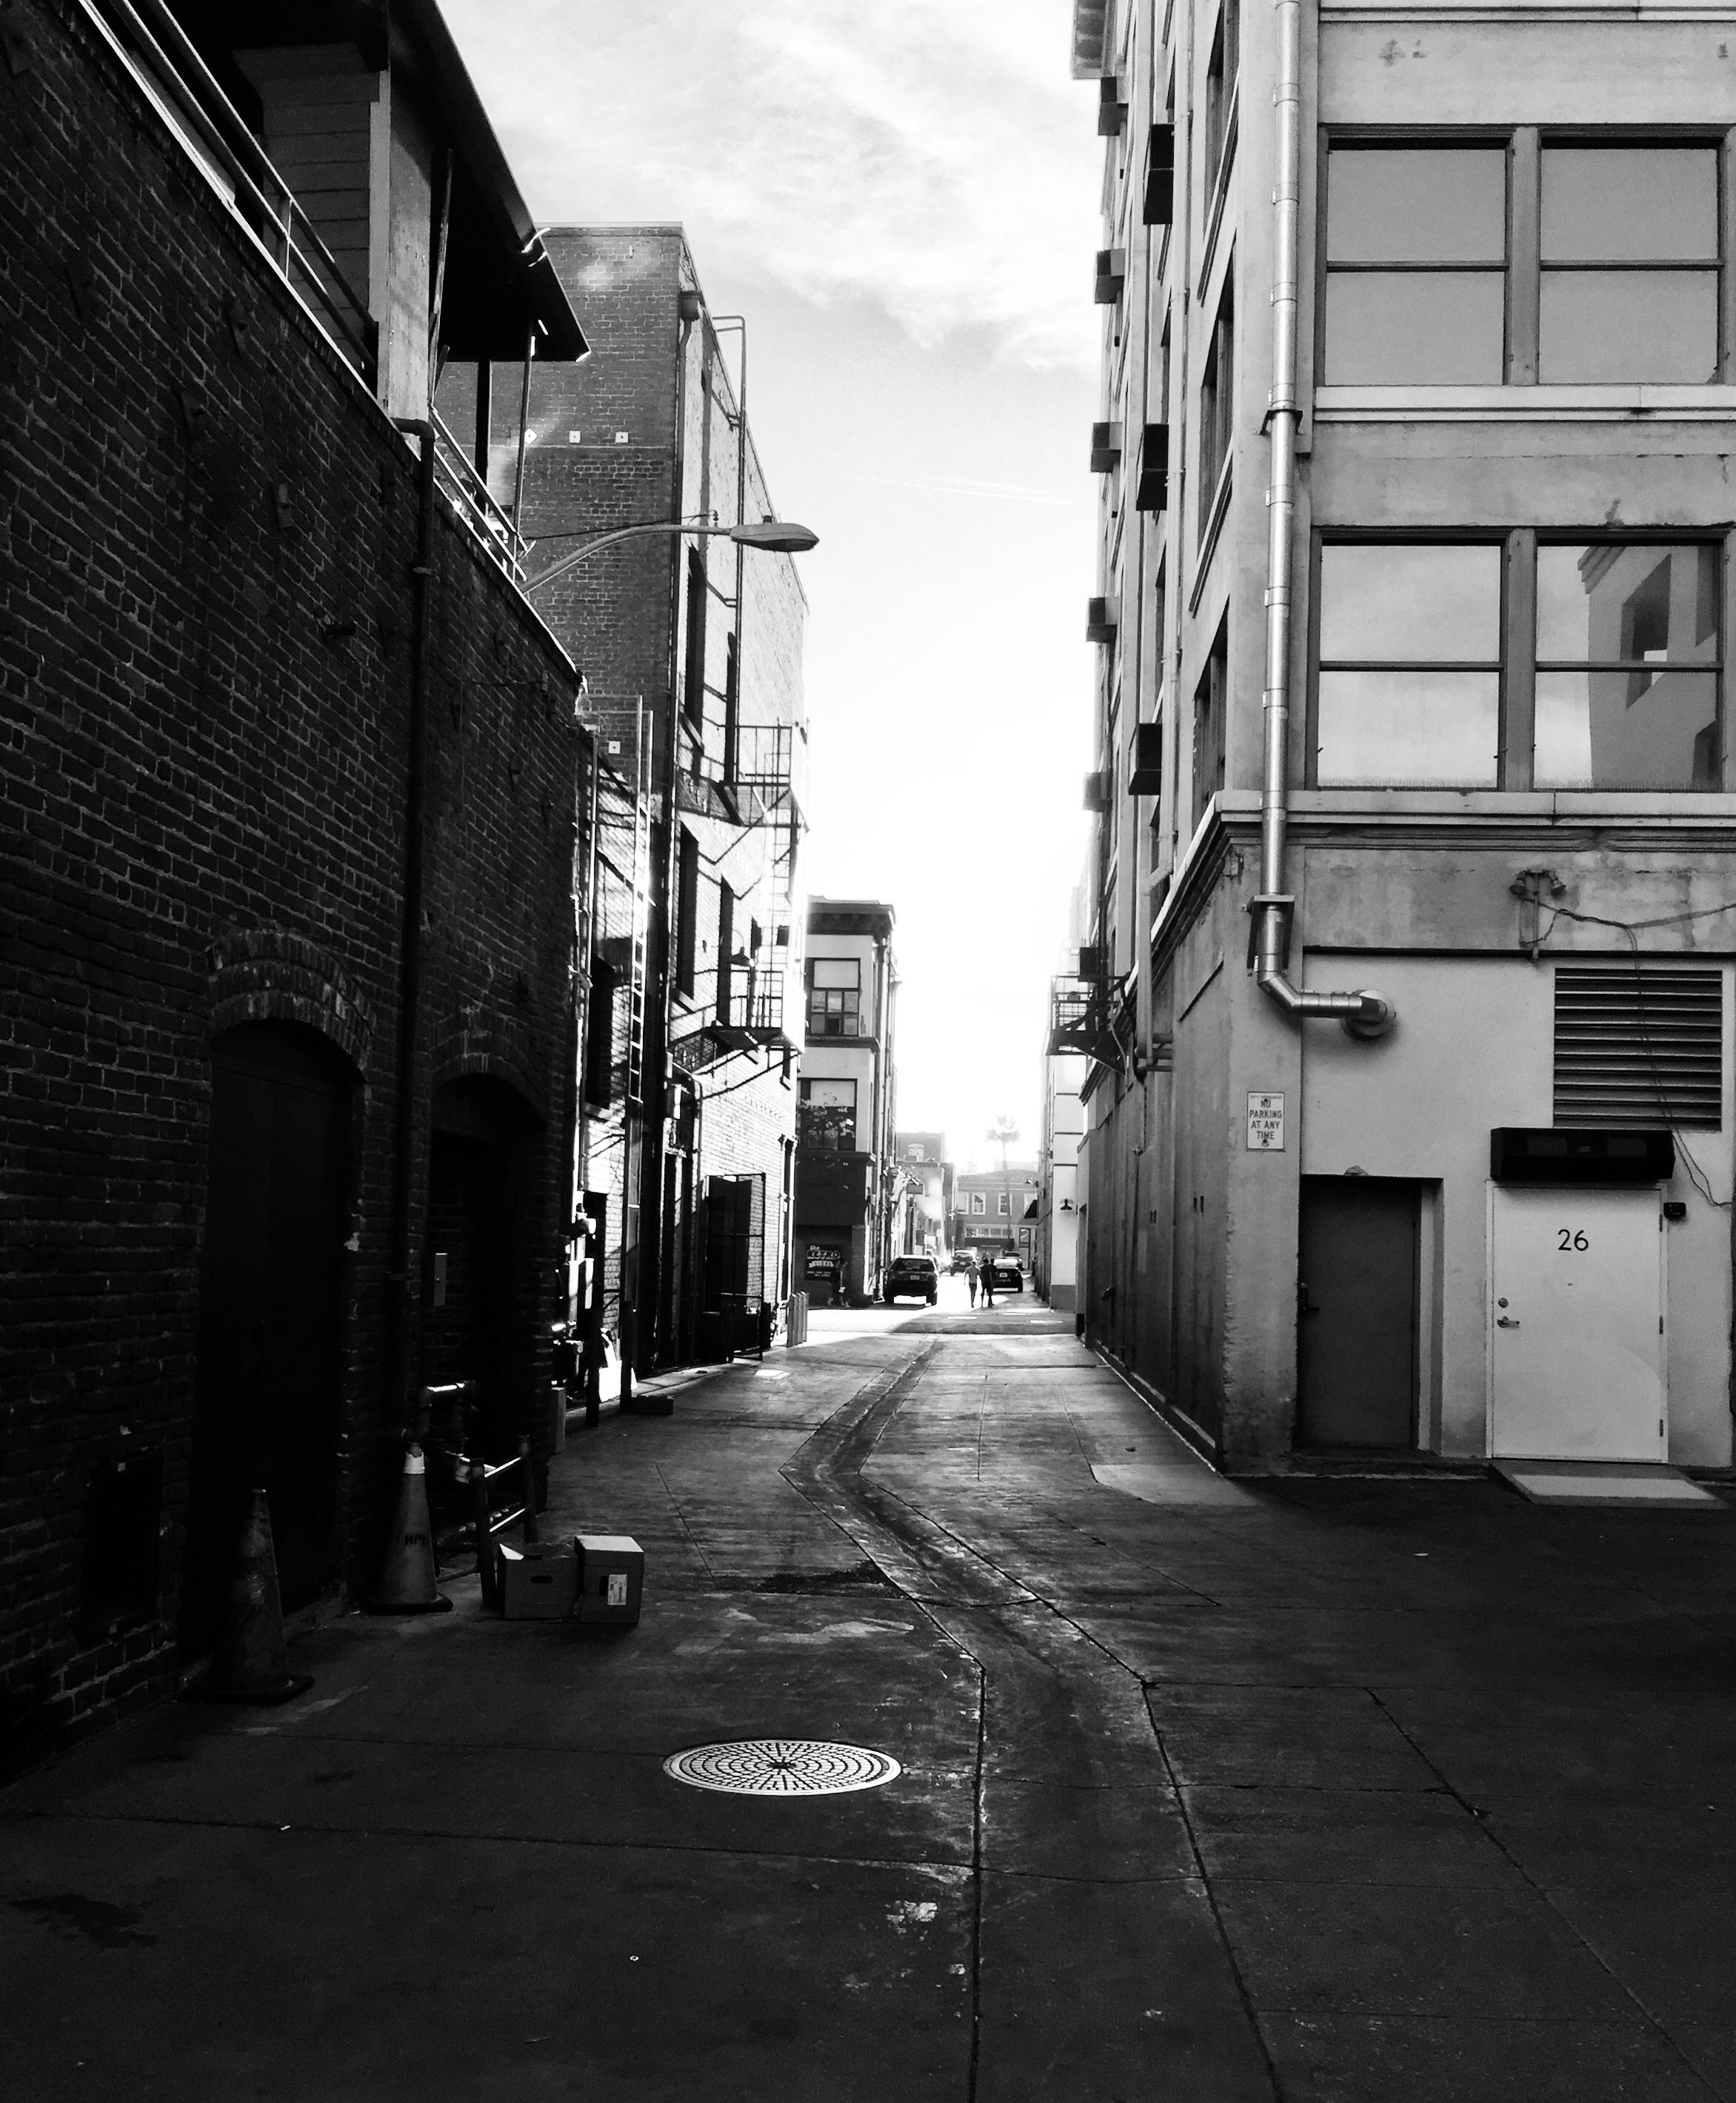 black and white photo of an alley way